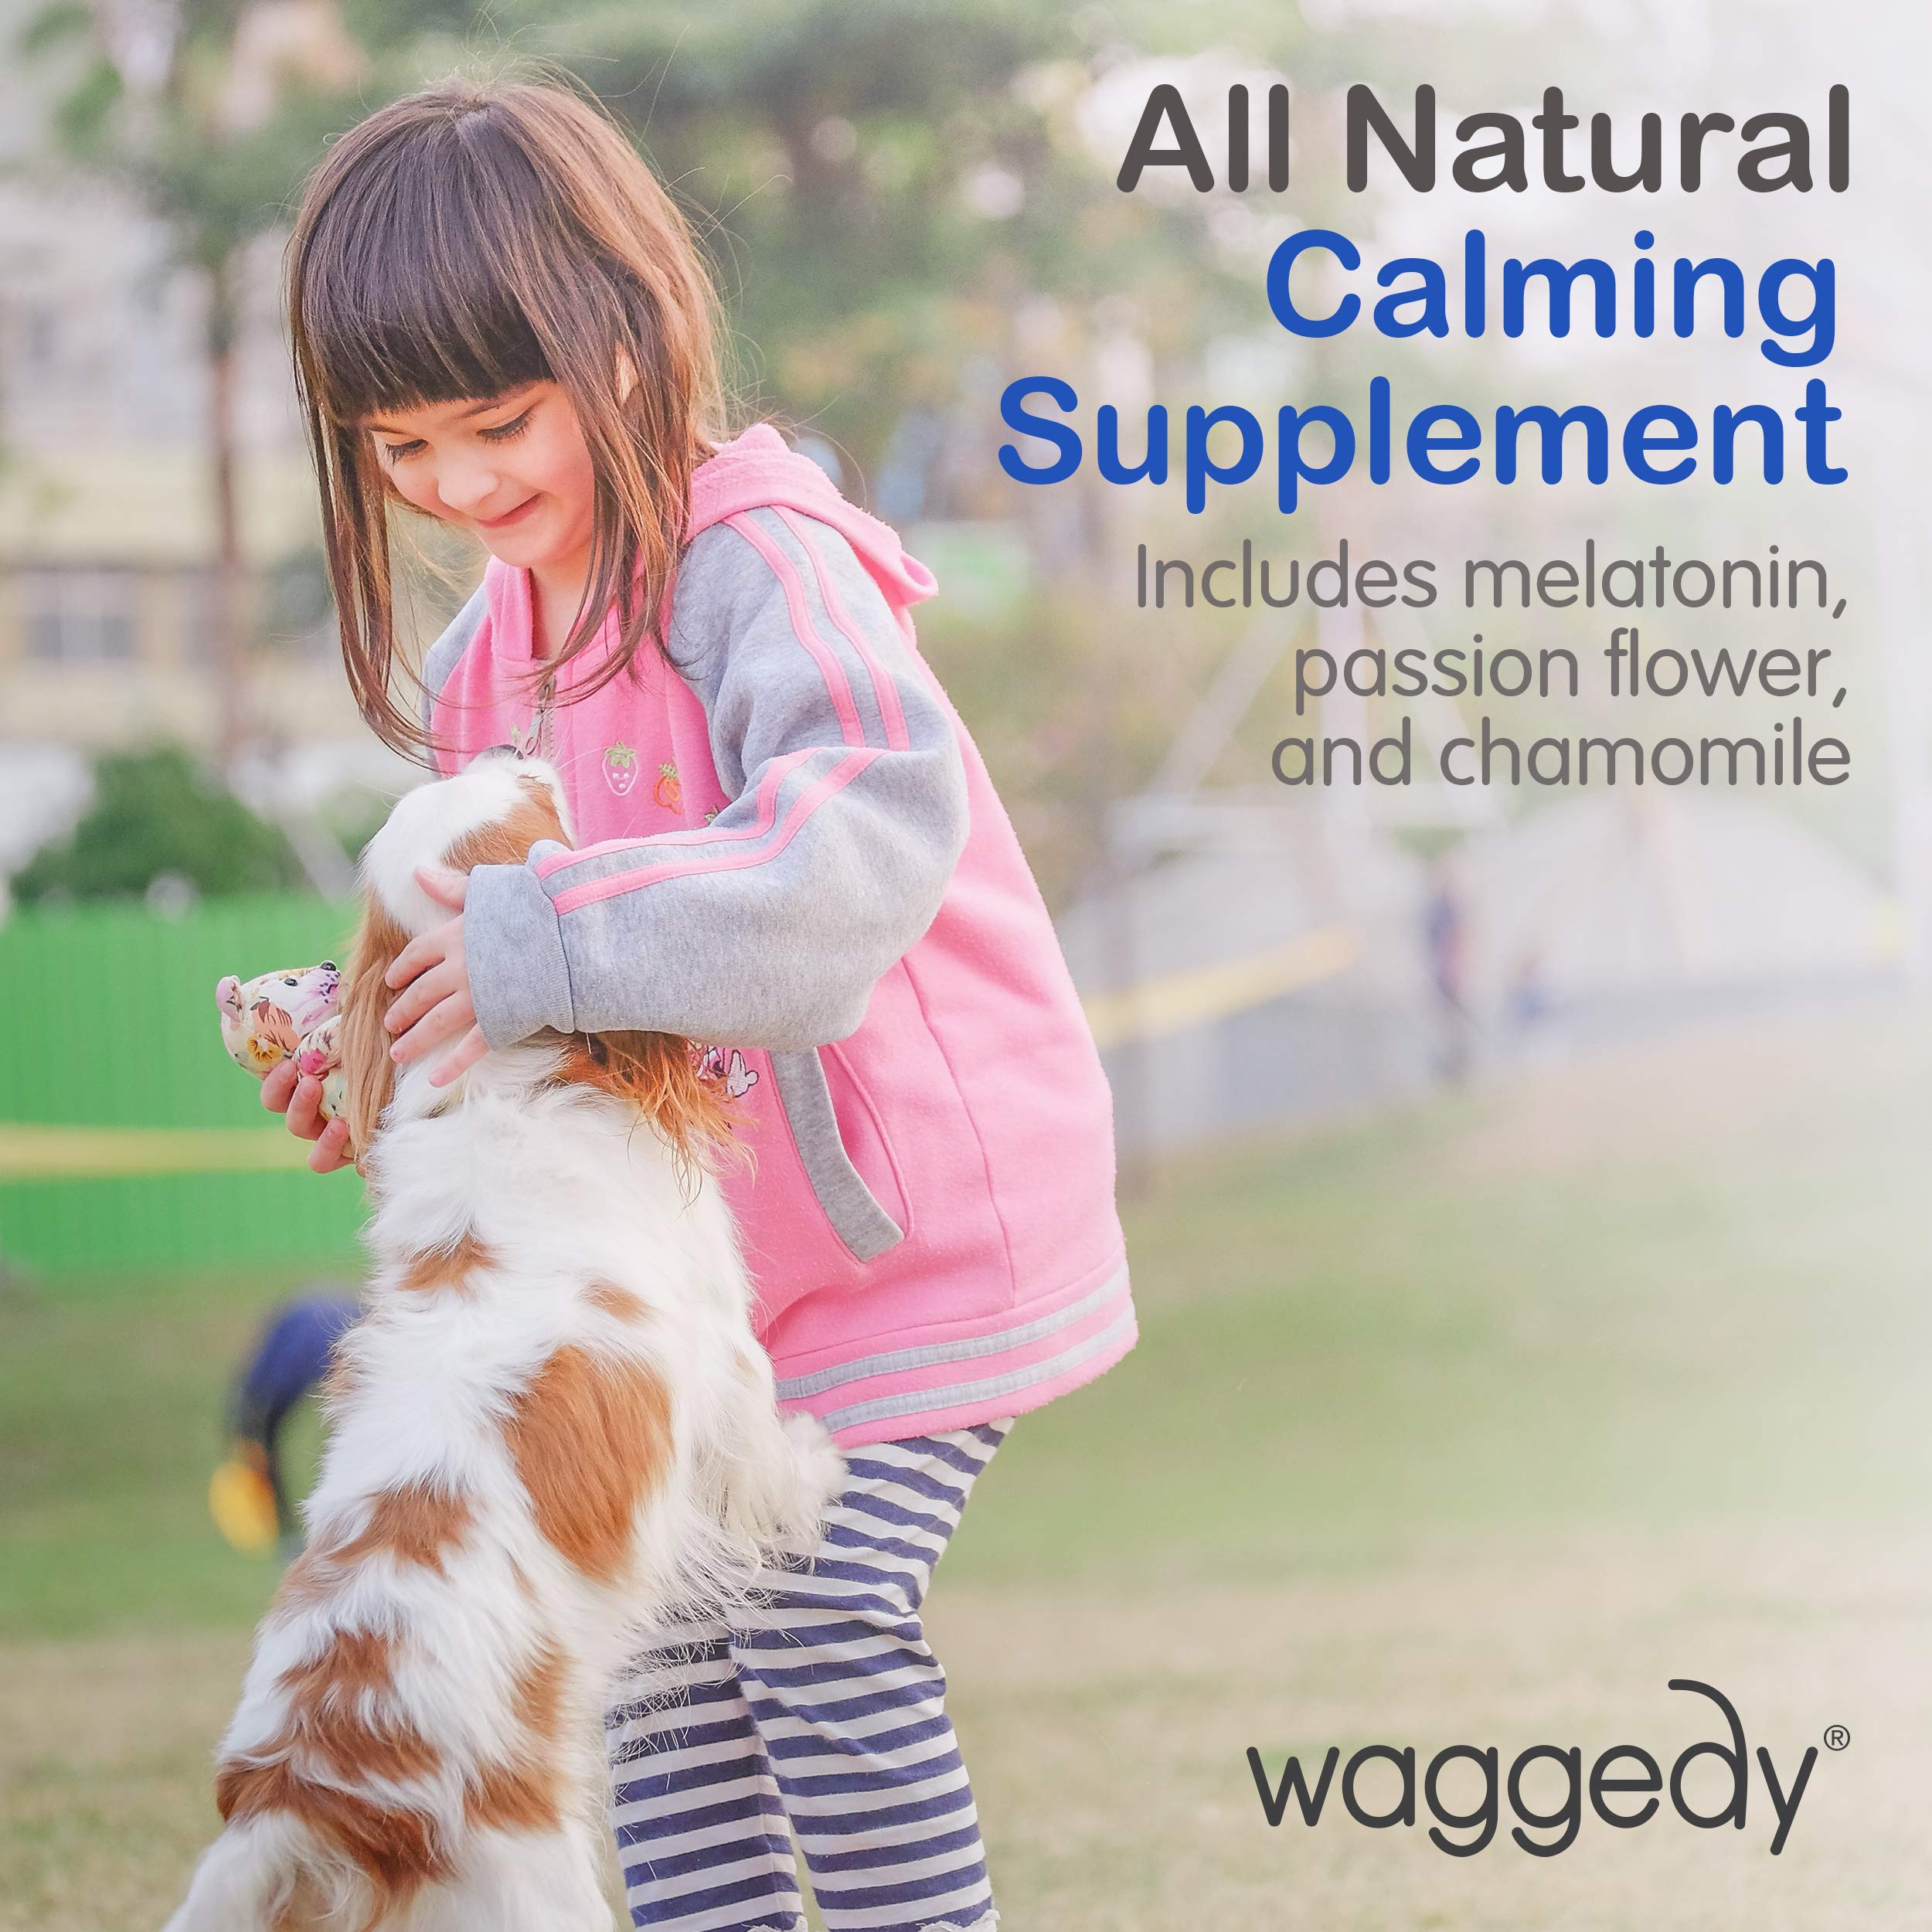 Calming Chews for Dogs, Tasty Treats Provide Stress & Anxiety Relief for Dogs During Separation, and Times of Fear - 60 Canine Melatonin Calm Aid Supplements w/ Passionflower & Chamomile (4.06 oz.) by Waggedy